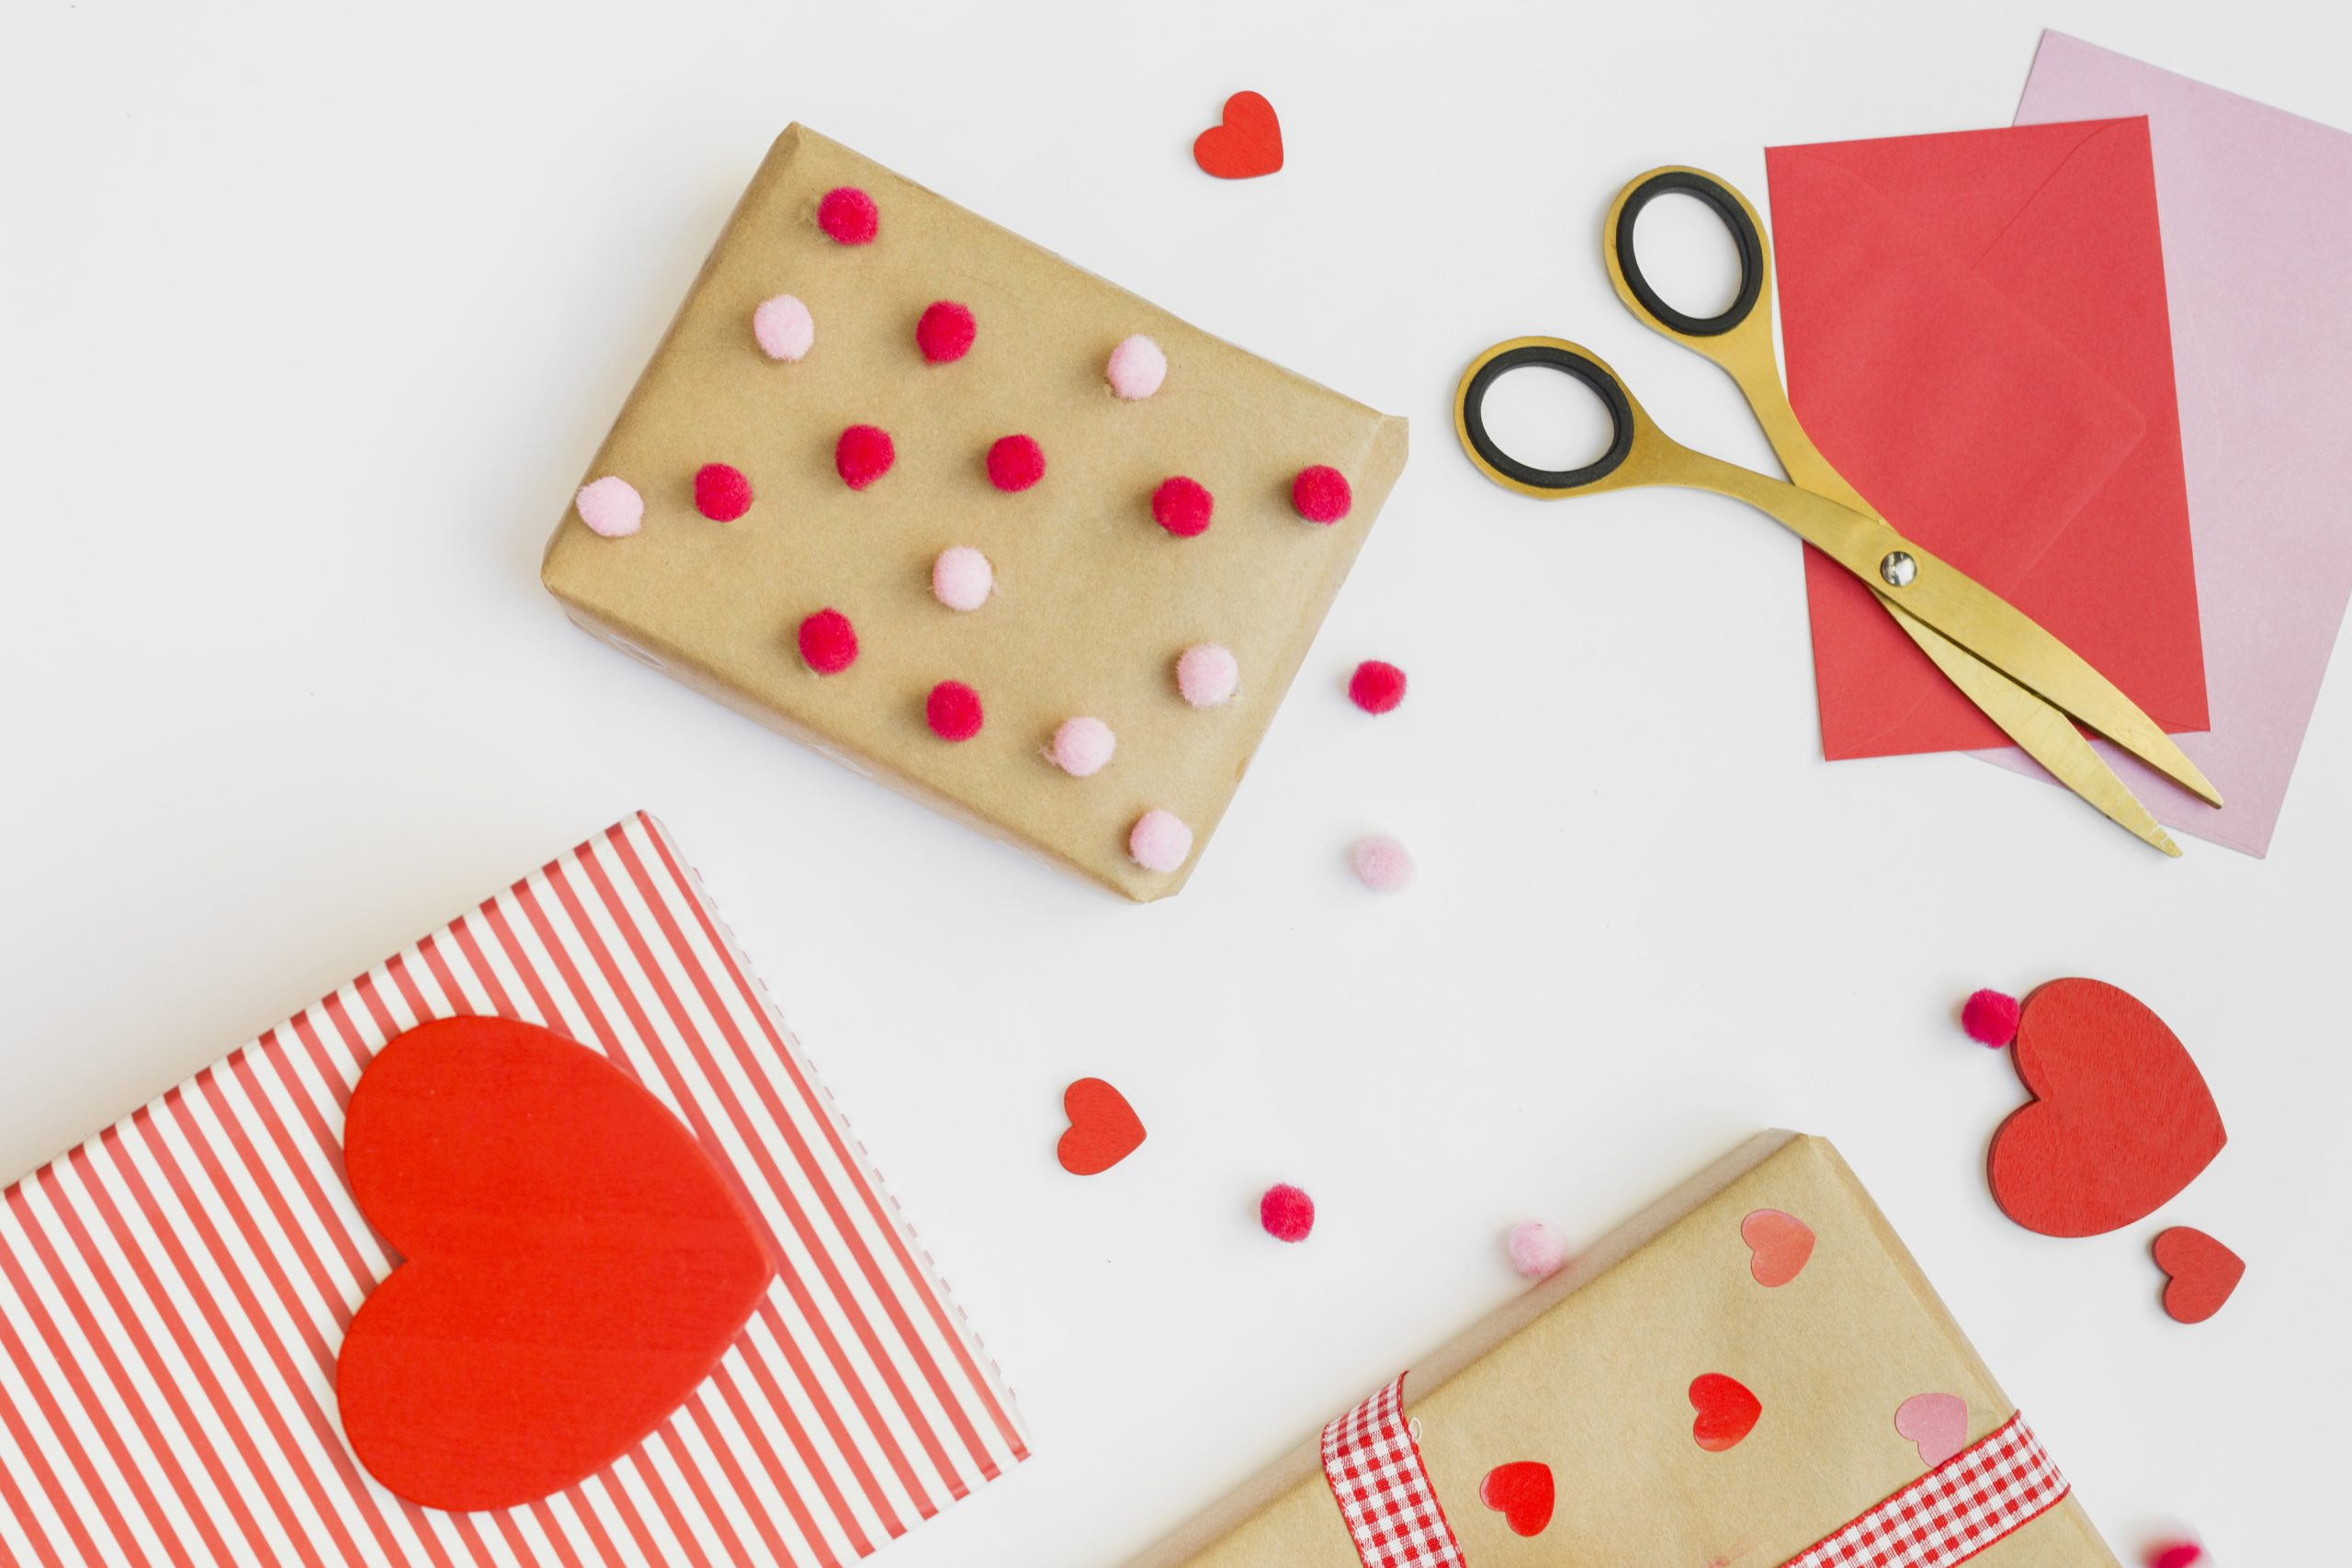 gift-boxes-with-small-red-hearts-white-table-scaled.jpg